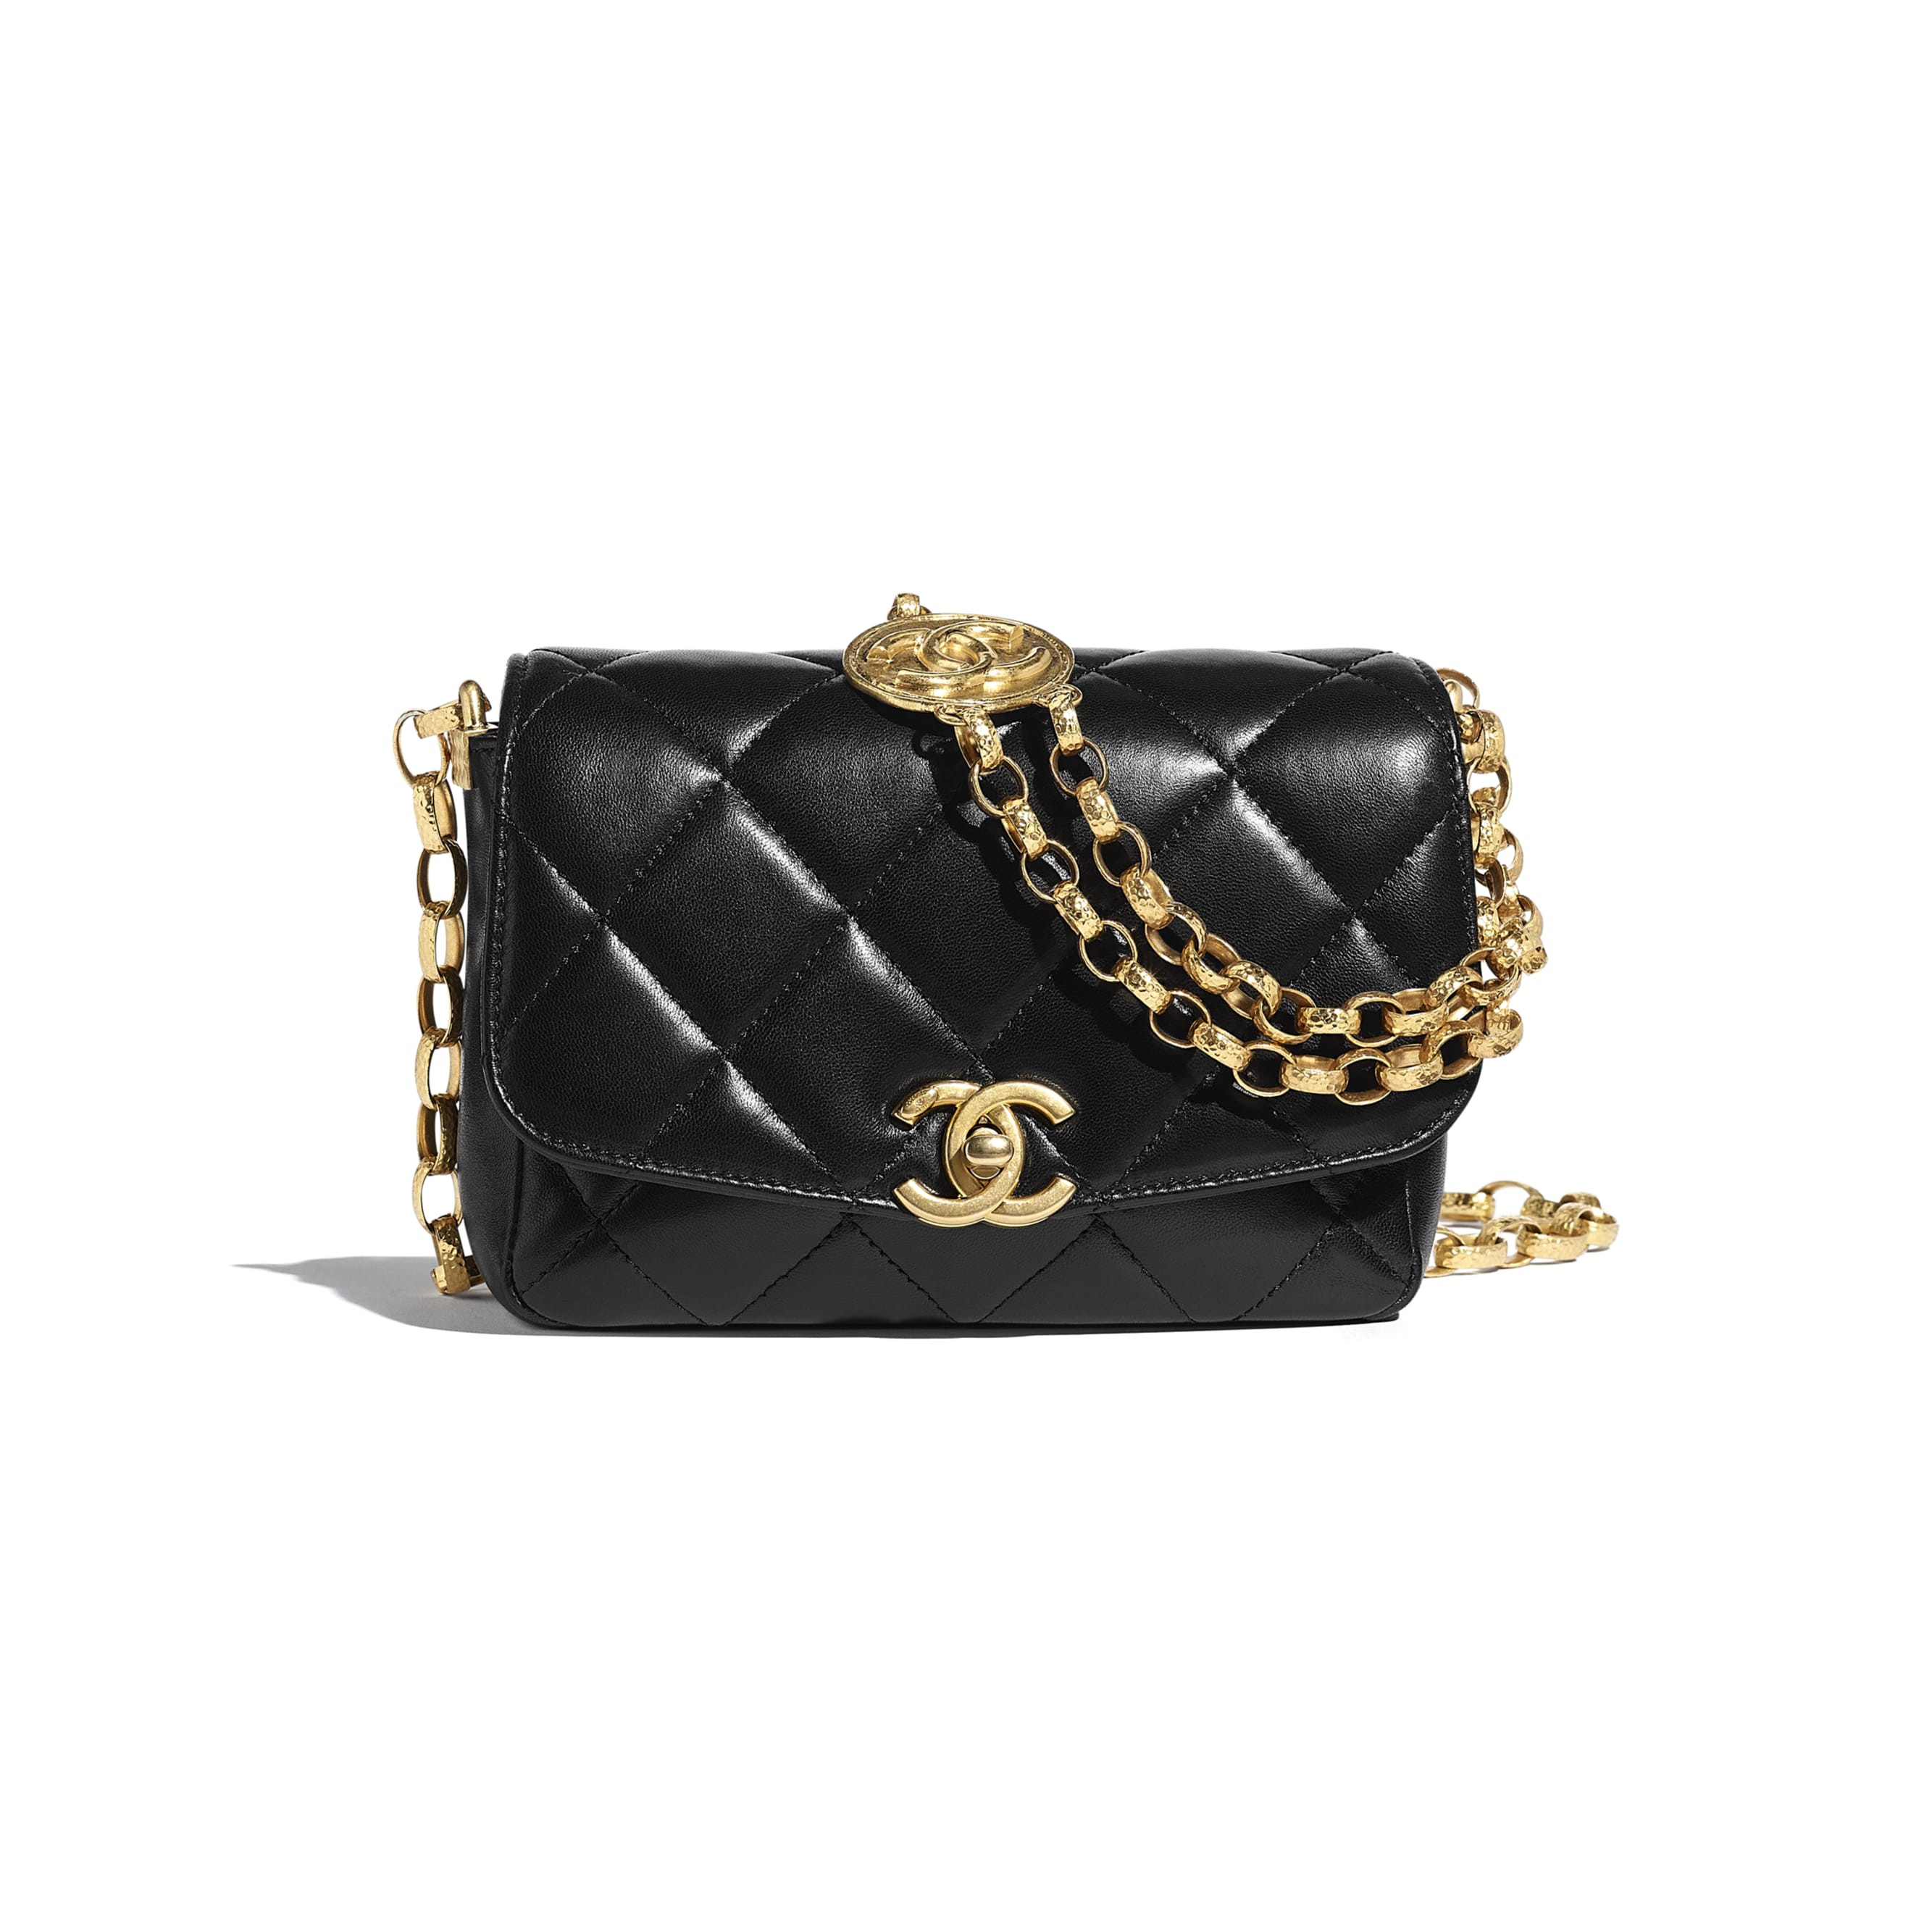 Small Flap Bag - Black - Lambskin & Gold-Tone Metal - CHANEL - Default view - see standard sized version